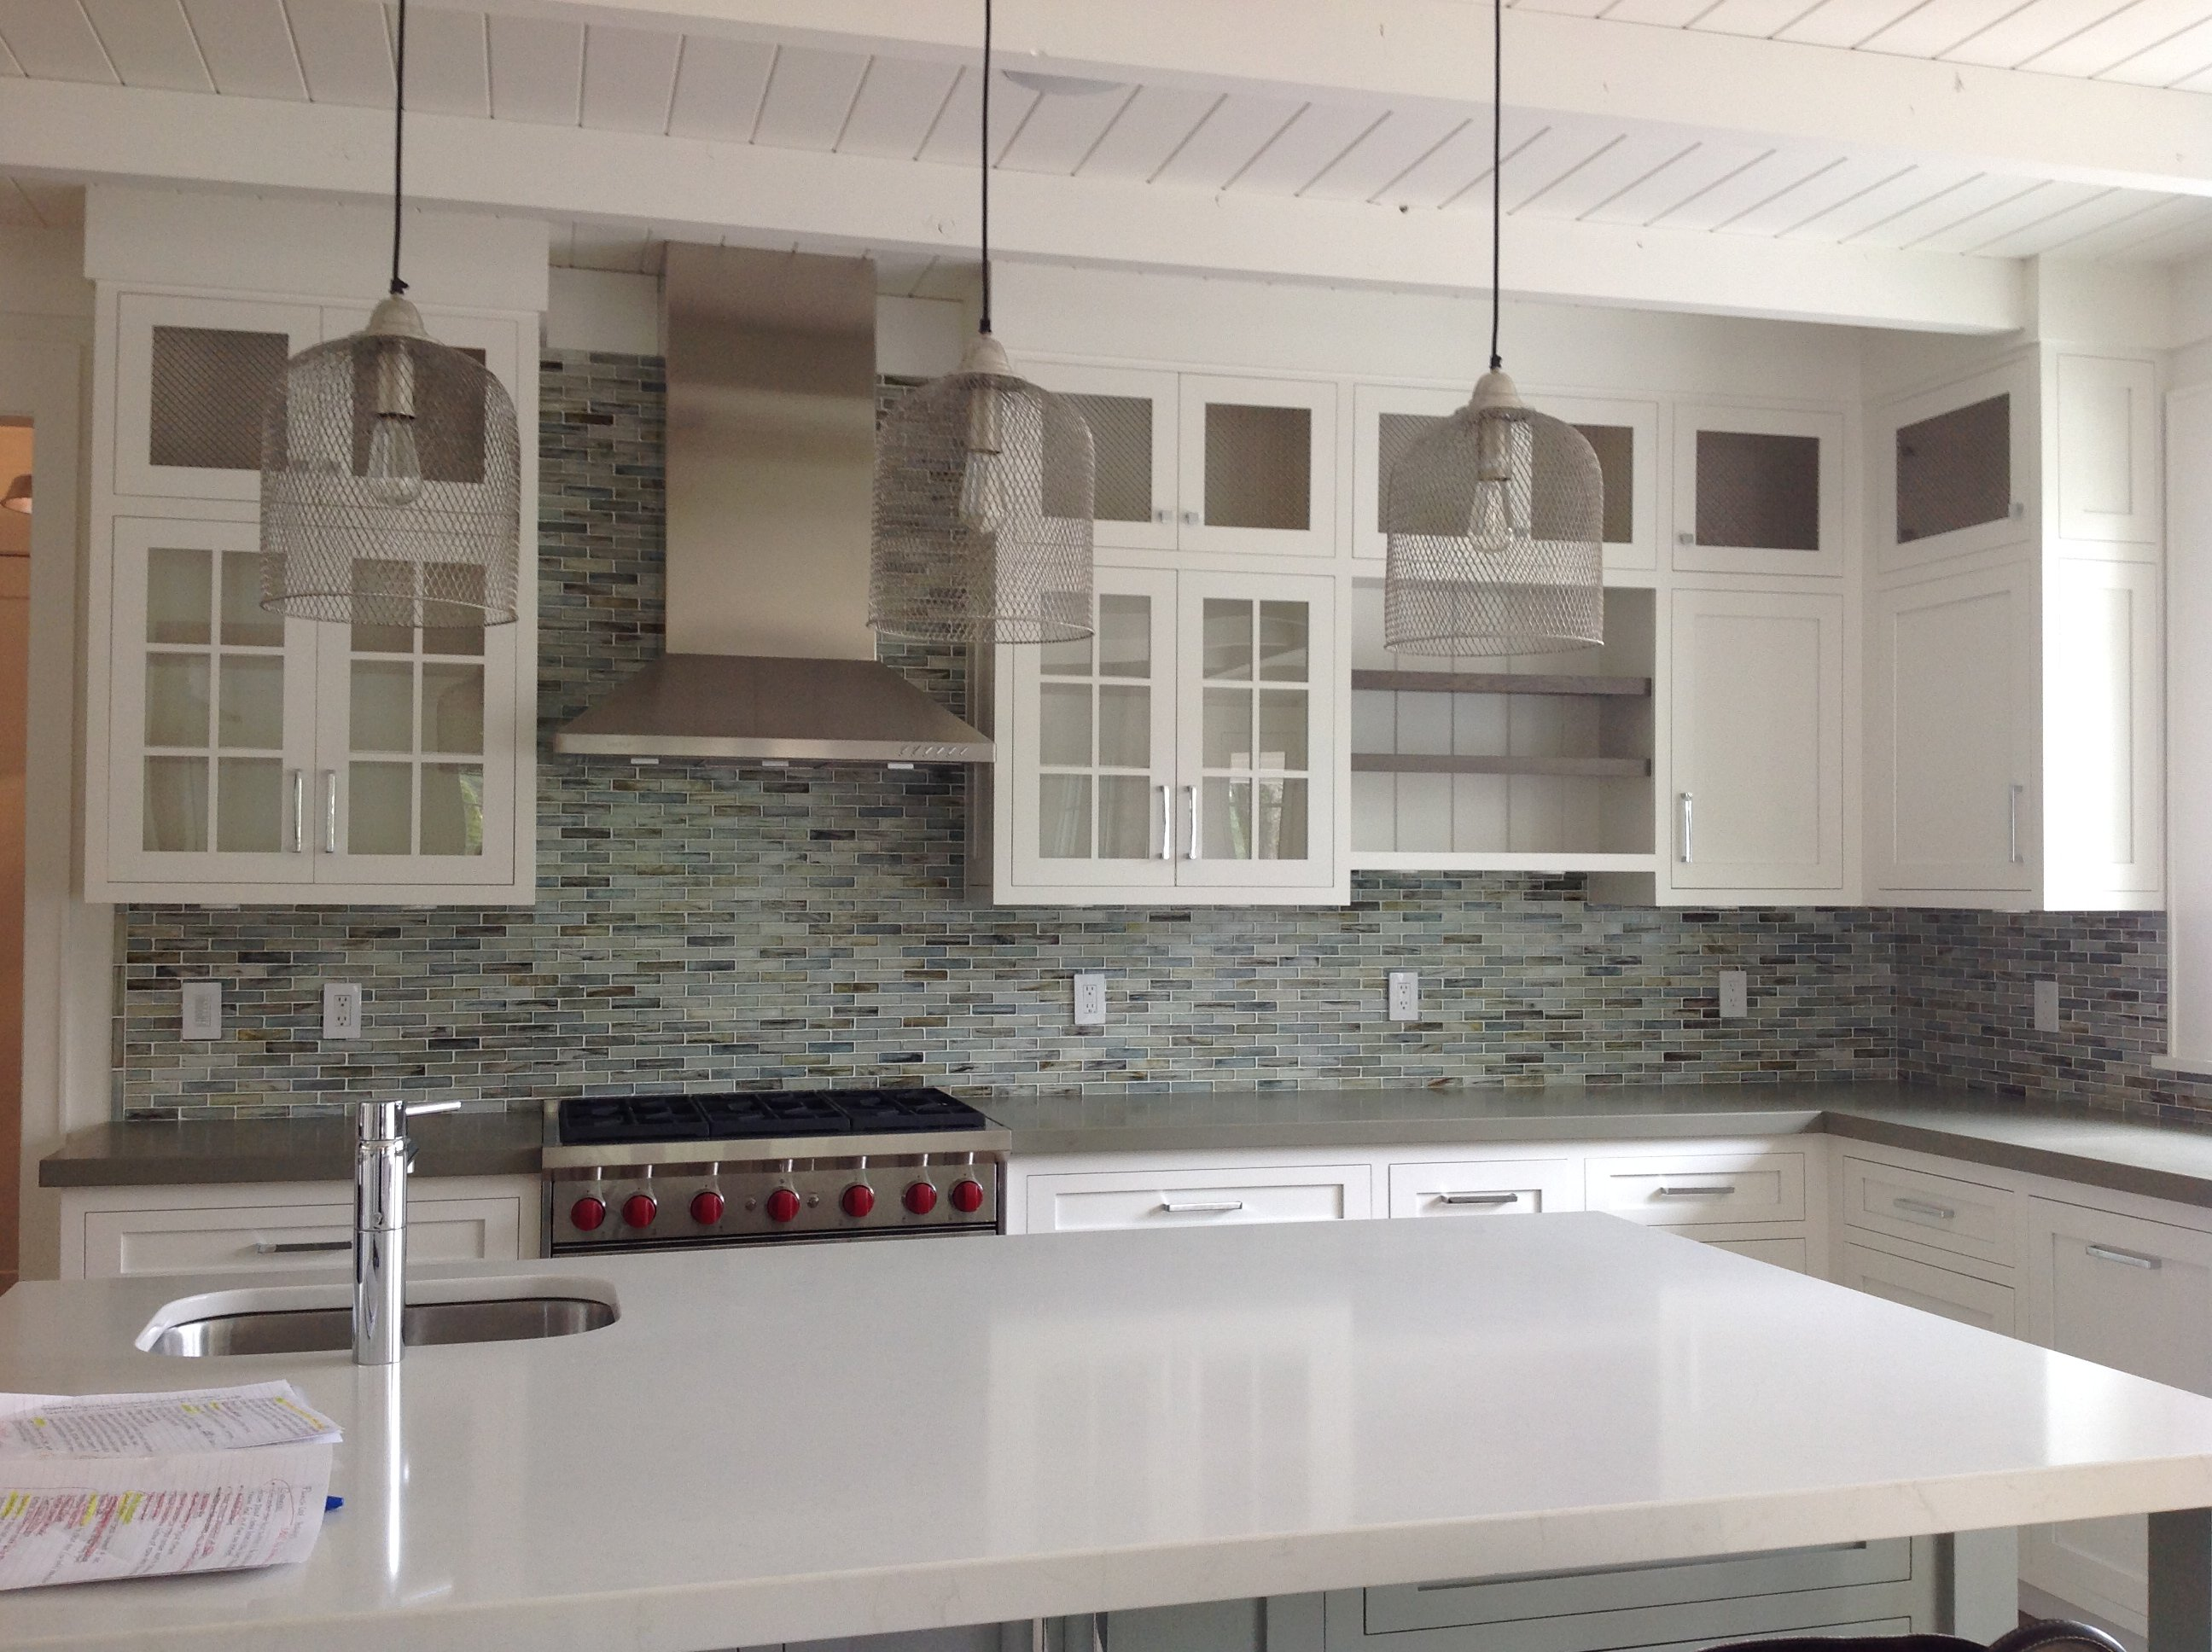 Kitchen Cabinets Blackmarsh Road Kitchen Cabinets Fairfield County Ct Wow Blog